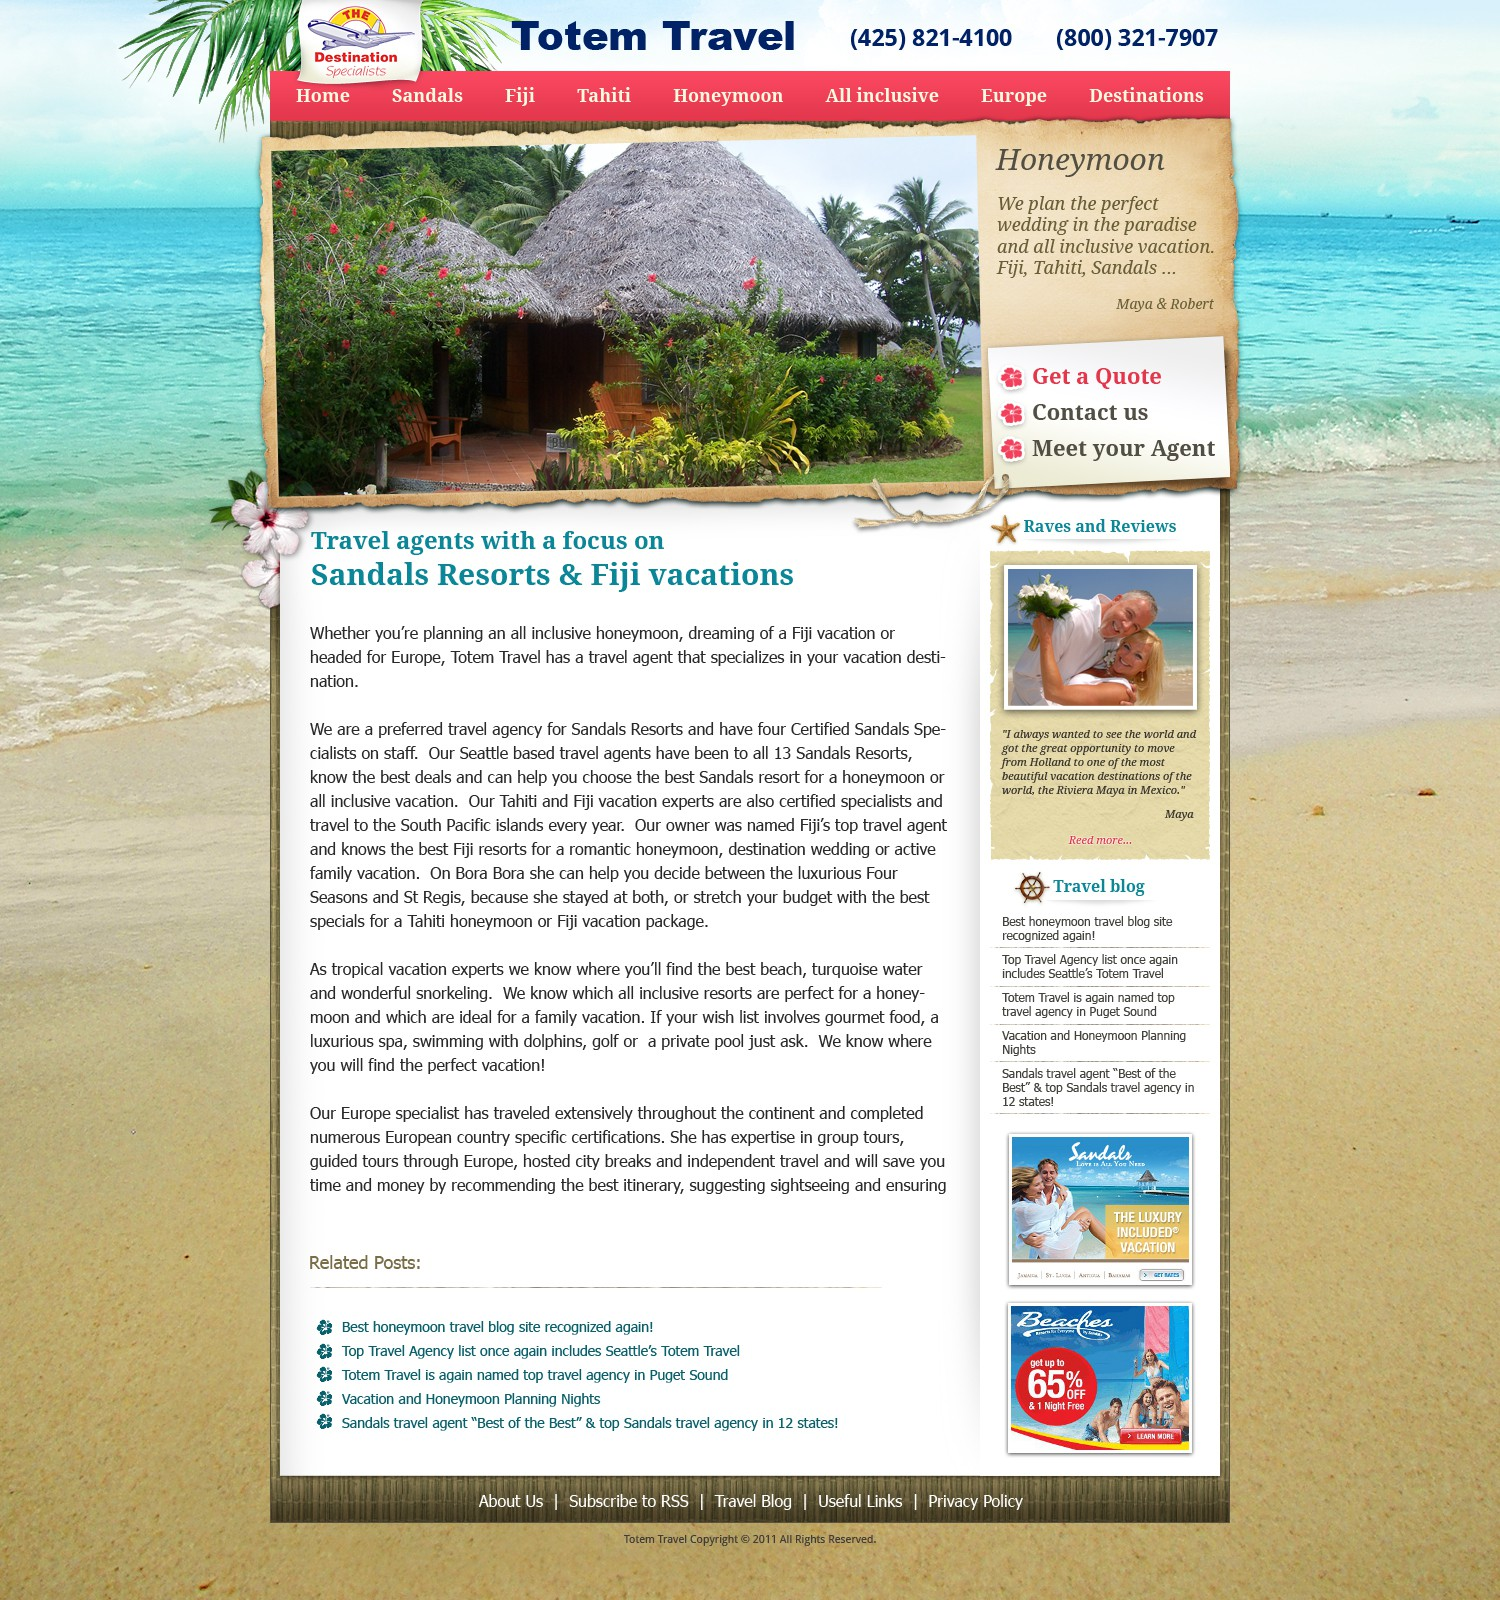 website design for Totem Travel